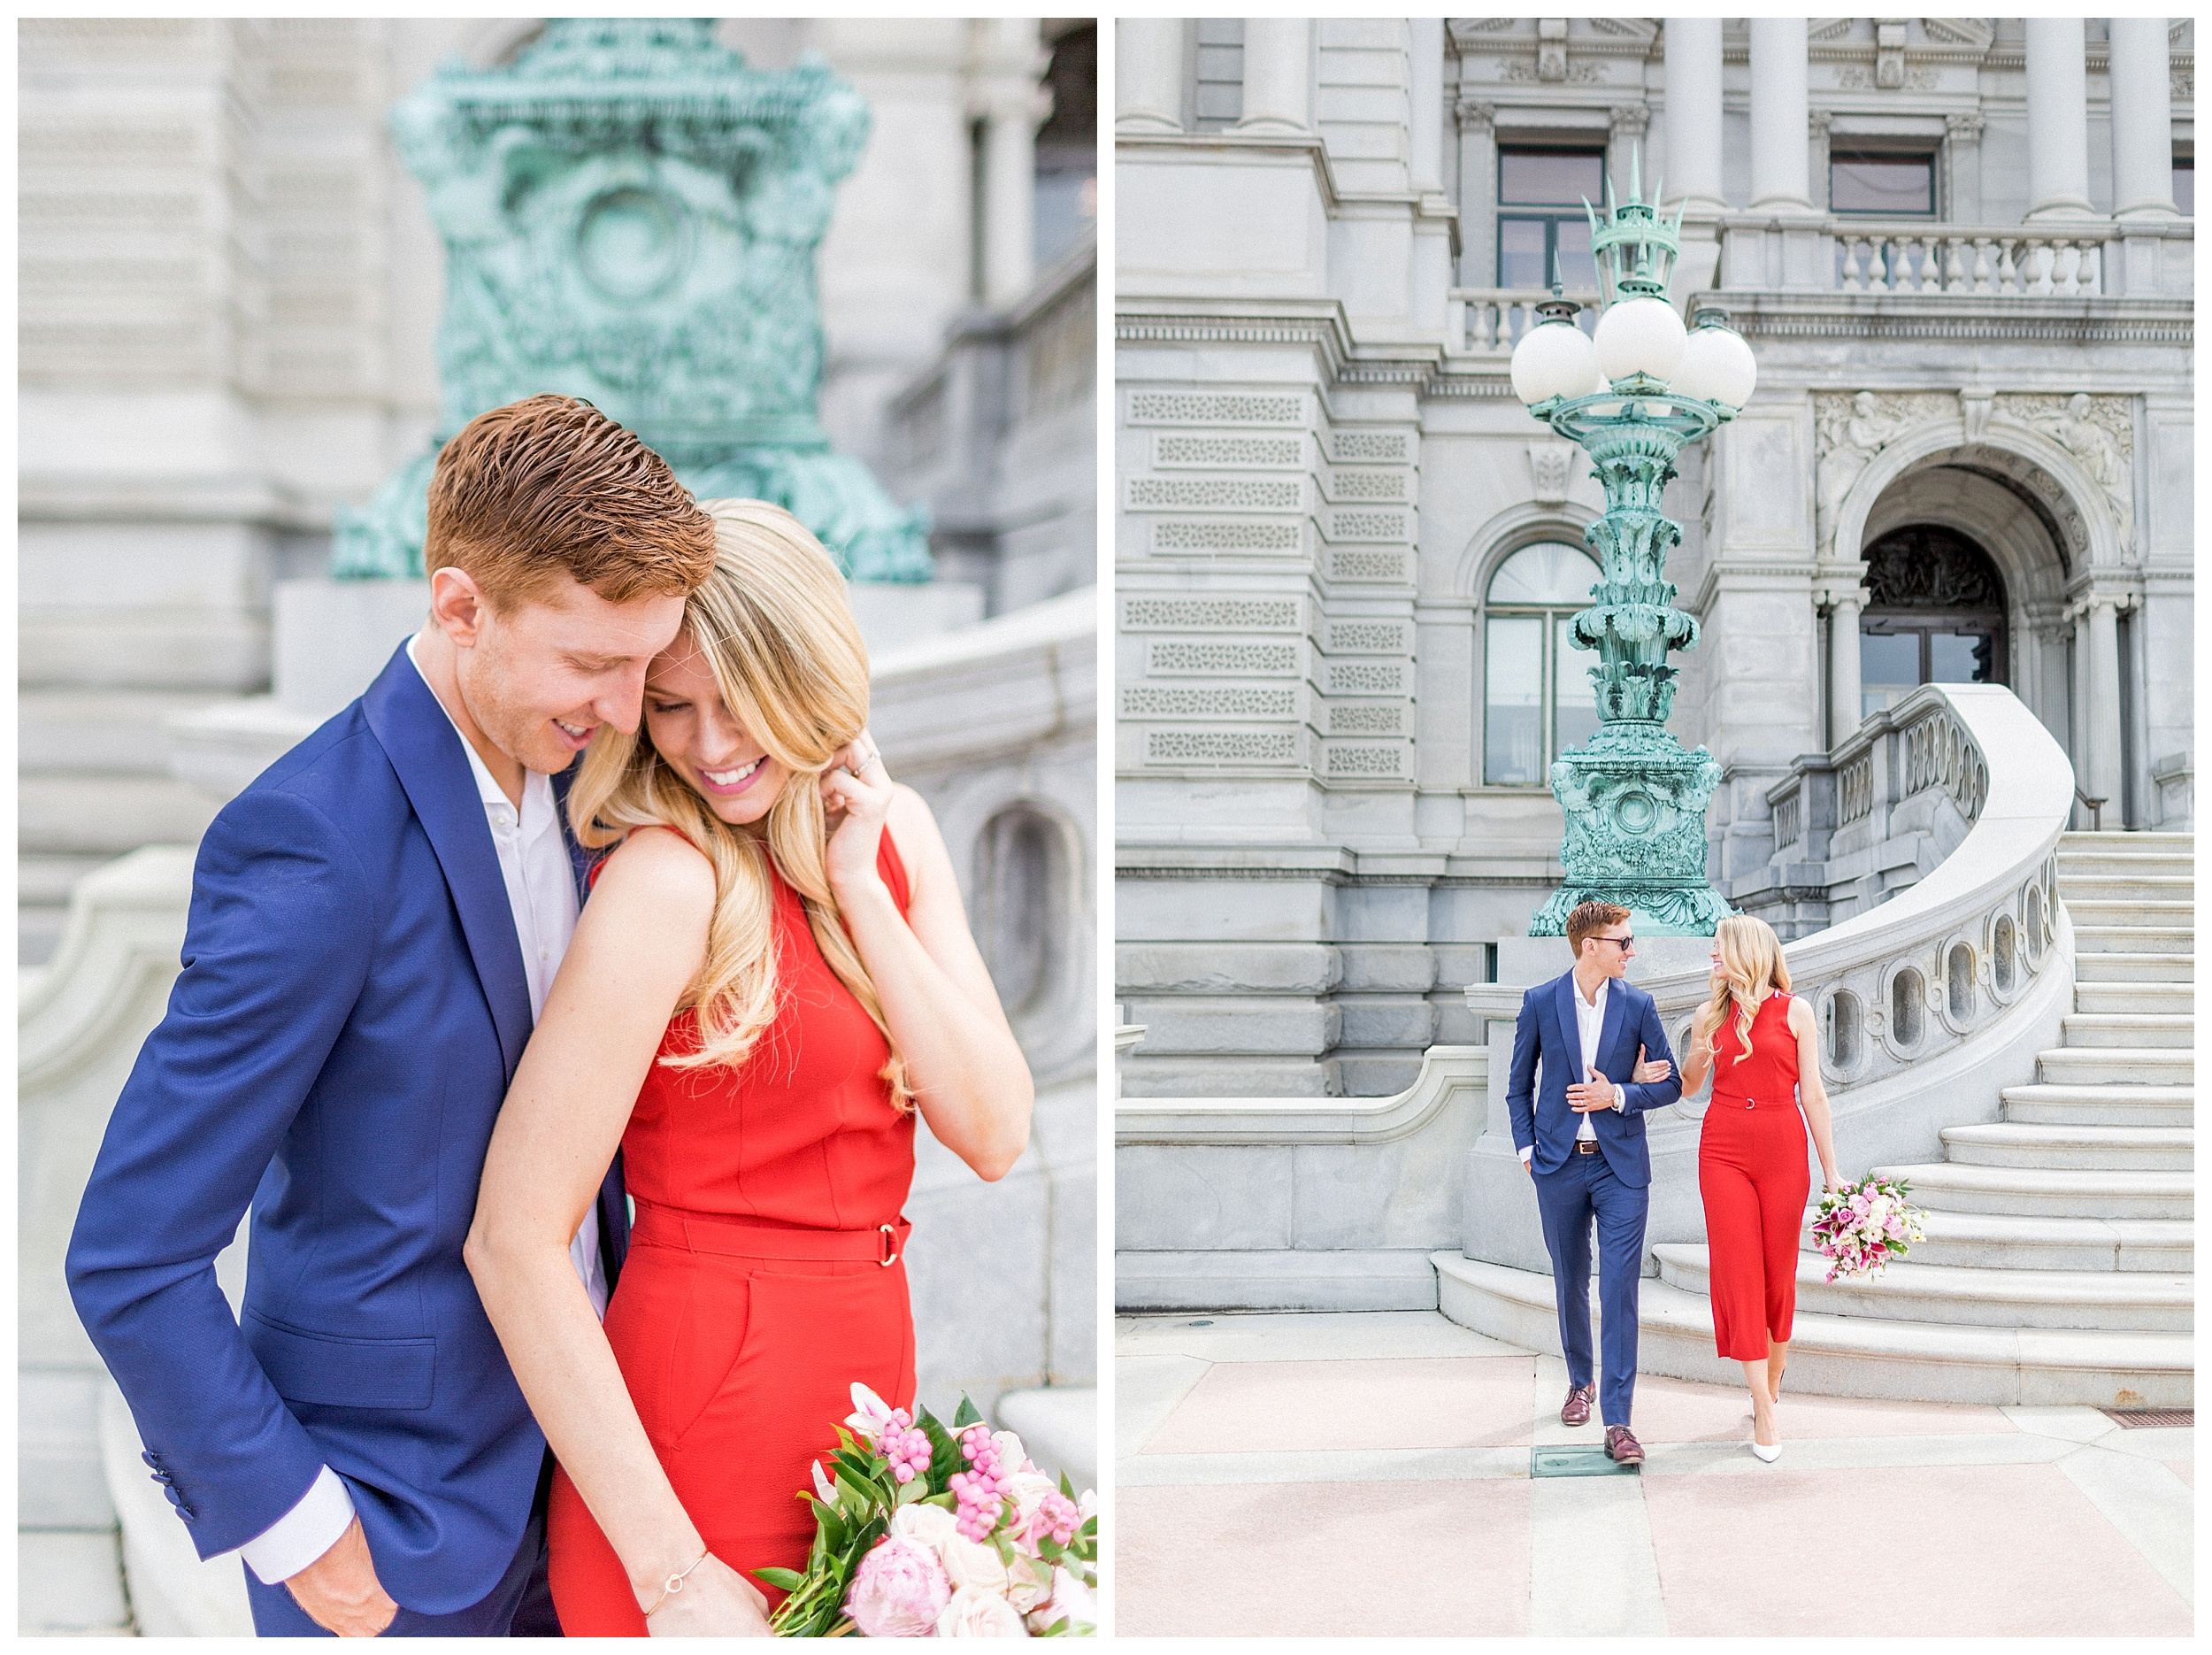 District of Columbia Elopement | Library of Congress Engagement Session Washington DC_0016.jpg